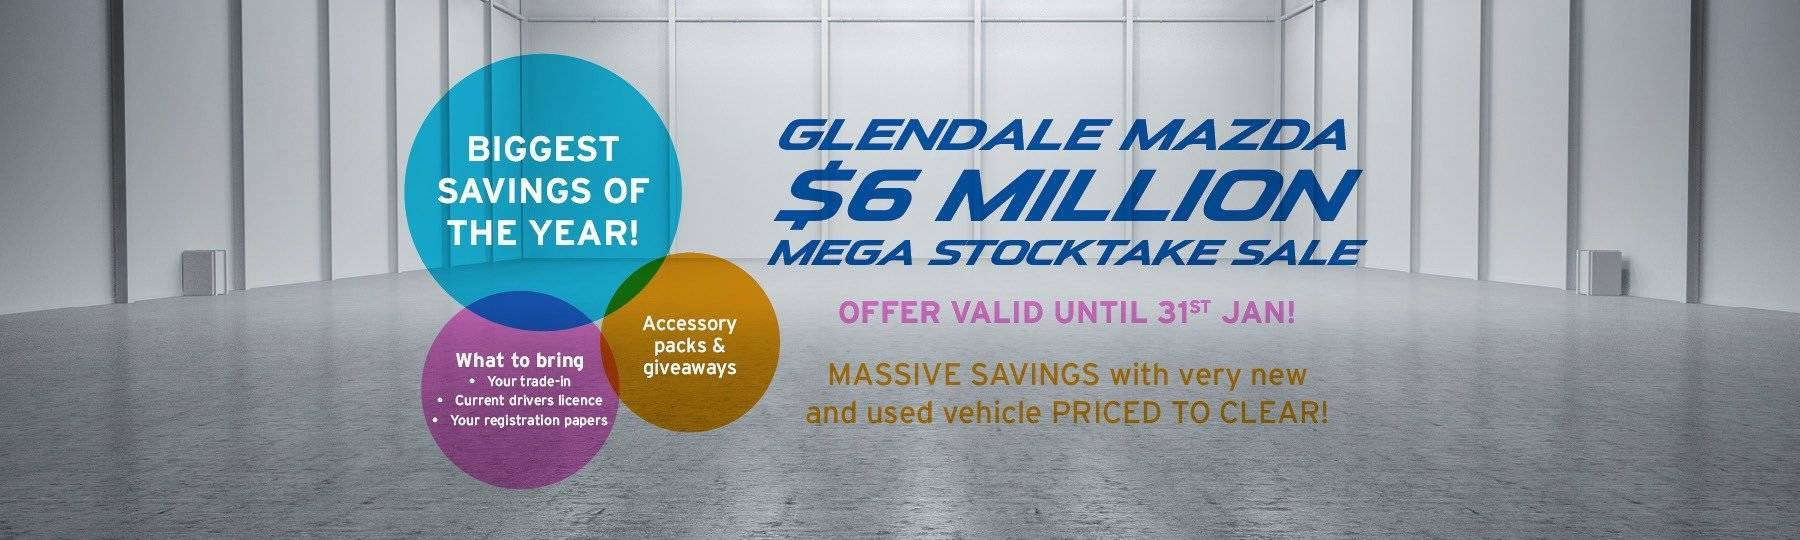 Glendale Mazda Stocktake Sale